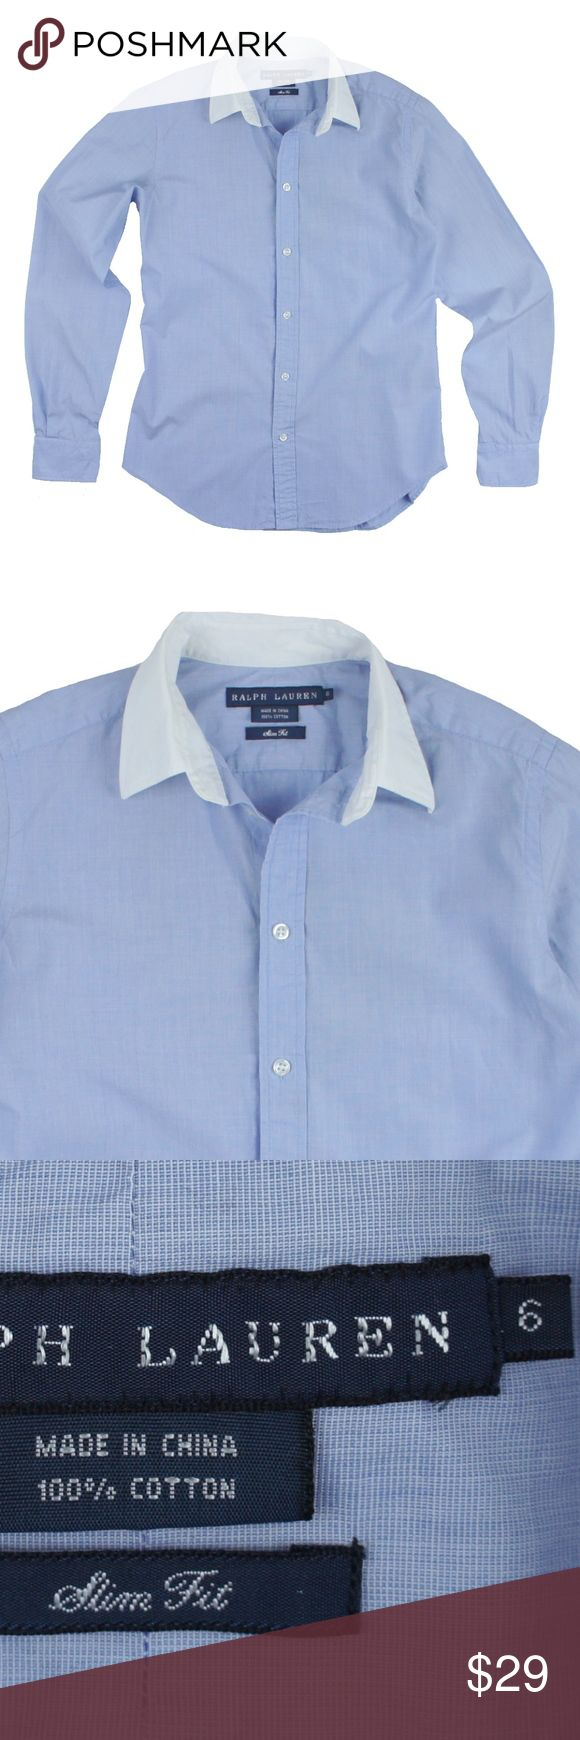 "RALPH LAUREN  Slim Fit Blue Button Down Shirt Size - 6  This blue slim fit button down shirt from RALPH LAUREN is in great condition. It features a white collar and cuffs. Button closures. Slim fit style. 100% Cotton.  Measures:  Bust 36"" Total Length: 25"" Sleeves: 24"" Ralph Lauren Tops Button Down Shirts"